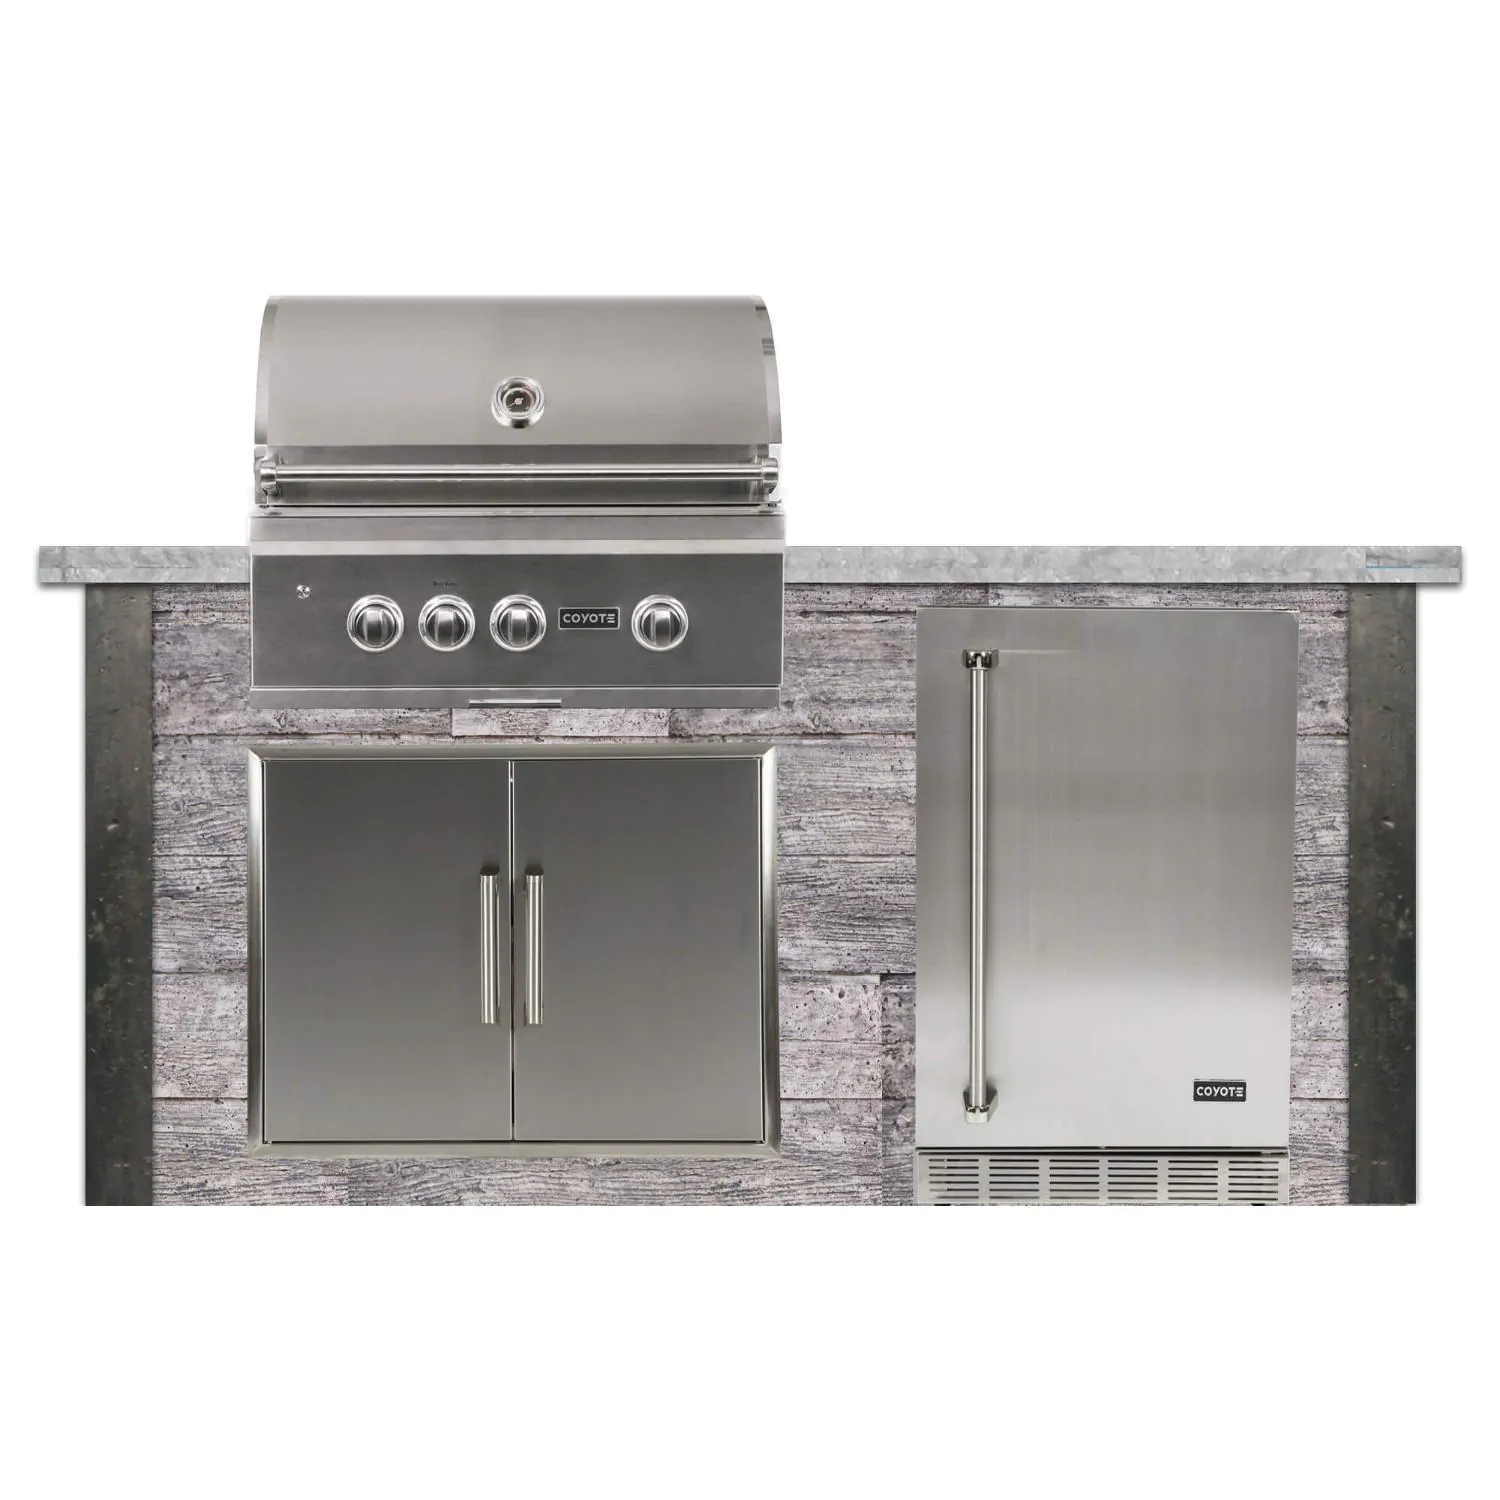 Coyote Ready-To-Assemble 6 Ft Outdoor Kitchen Island With 30-Inch S Series Natural Gas Grill (Ships As Propane With Conversion Fittings) - Weathered Wood/Stone Gray - RTAC-G6-P-WG-C2SL30NG